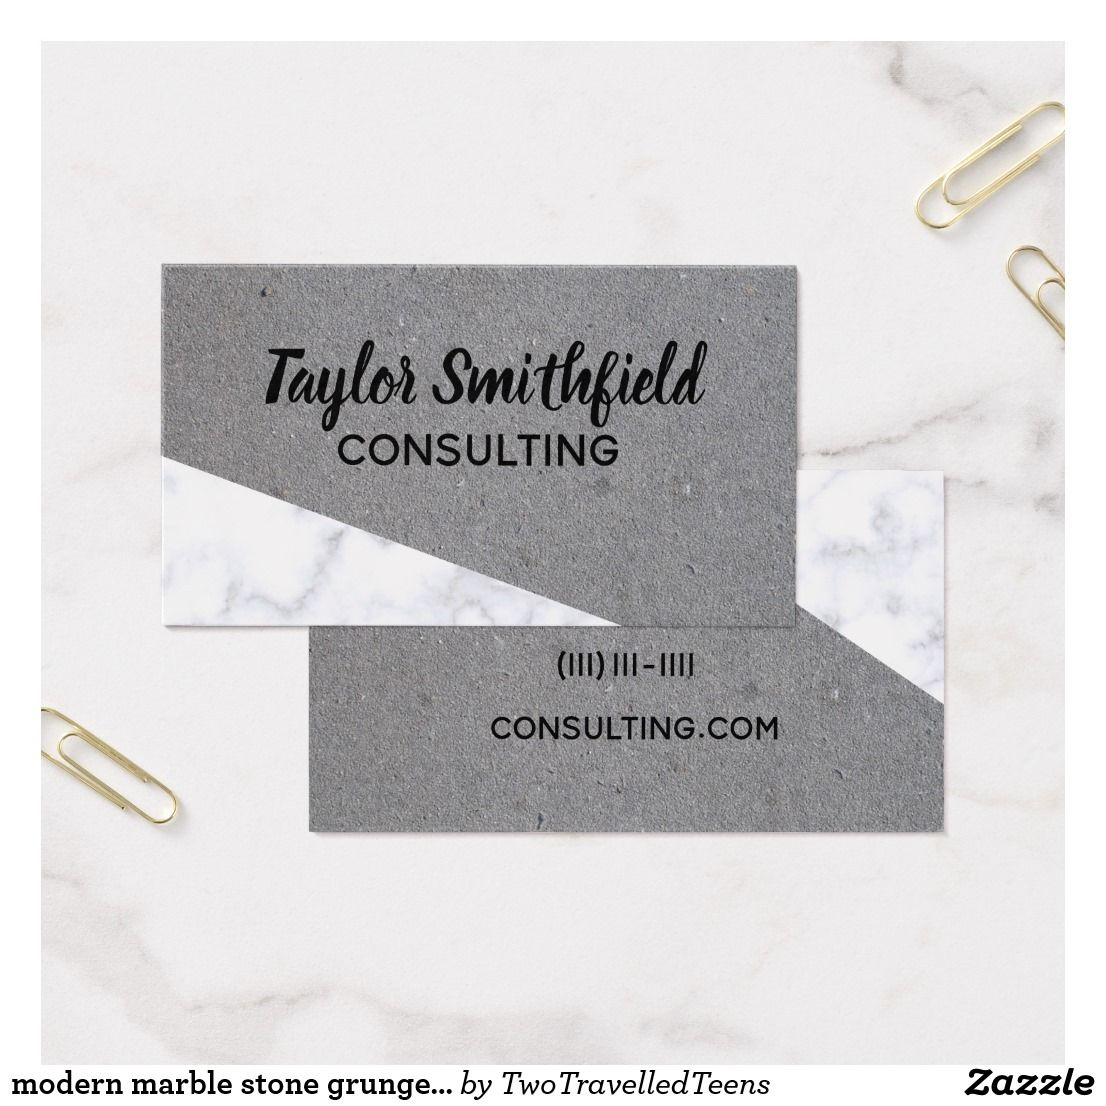 modern marble stone grunge trendy business card | Business Card ...